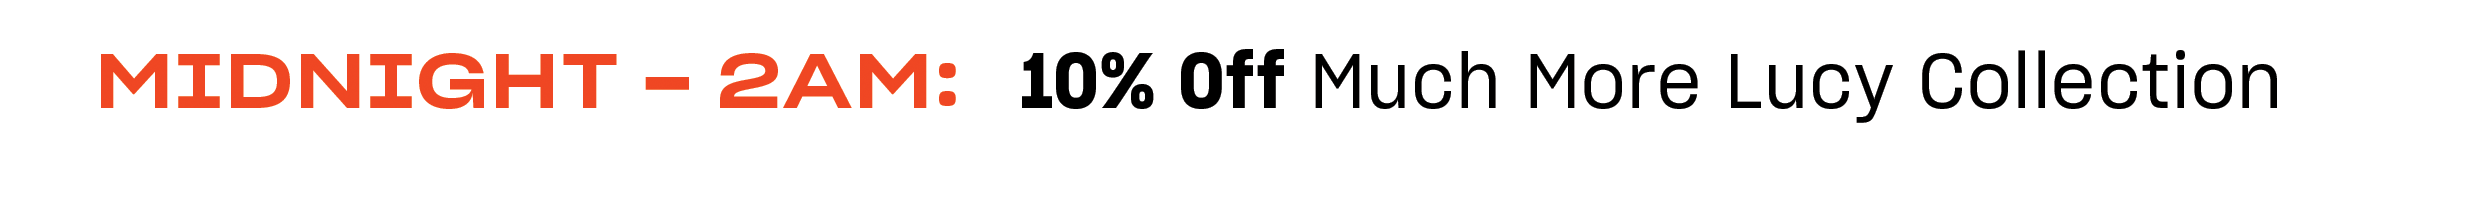 Midnight-2am: 10% off Much More Lucy Collection